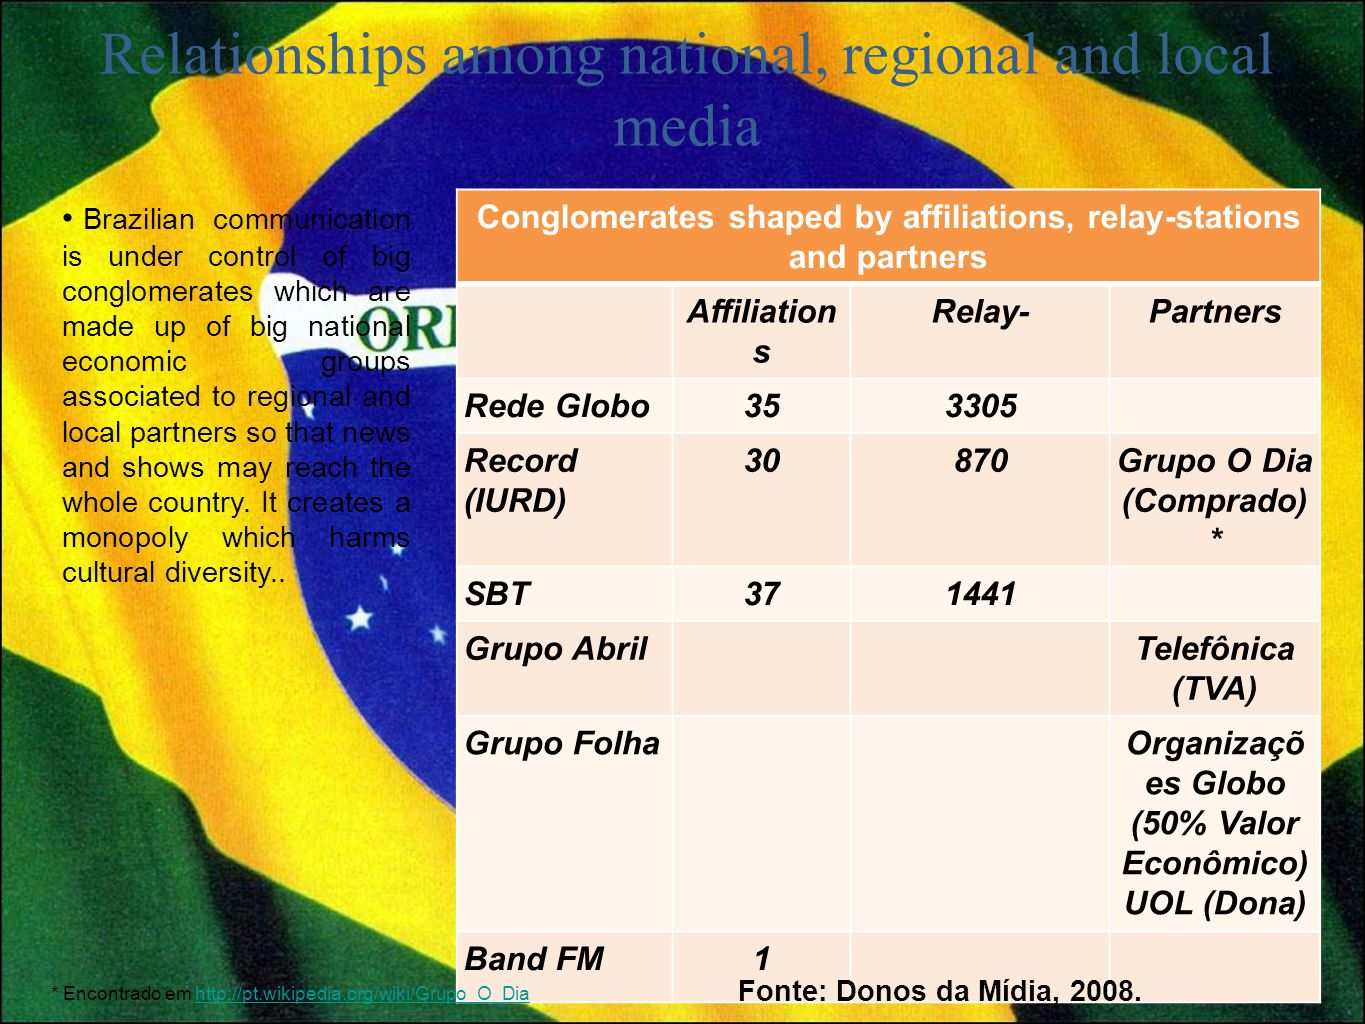 Conglomerates shaped by affiliations, relay-stations and partners Affiliation s Relay-Partners Rede Globo353305 Record (IURD) 30870Grupo O Dia (Comprado) * SBT371441 Grupo AbrilTelefônica (TVA) Grupo FolhaOrganizaçõ es Globo (50% Valor Econômico) UOL (Dona) Band FM1 Brazilian communication is under control of big conglomerates which are made up of big national economic groups associated to regional and local partners so that news and shows may reach the whole country.